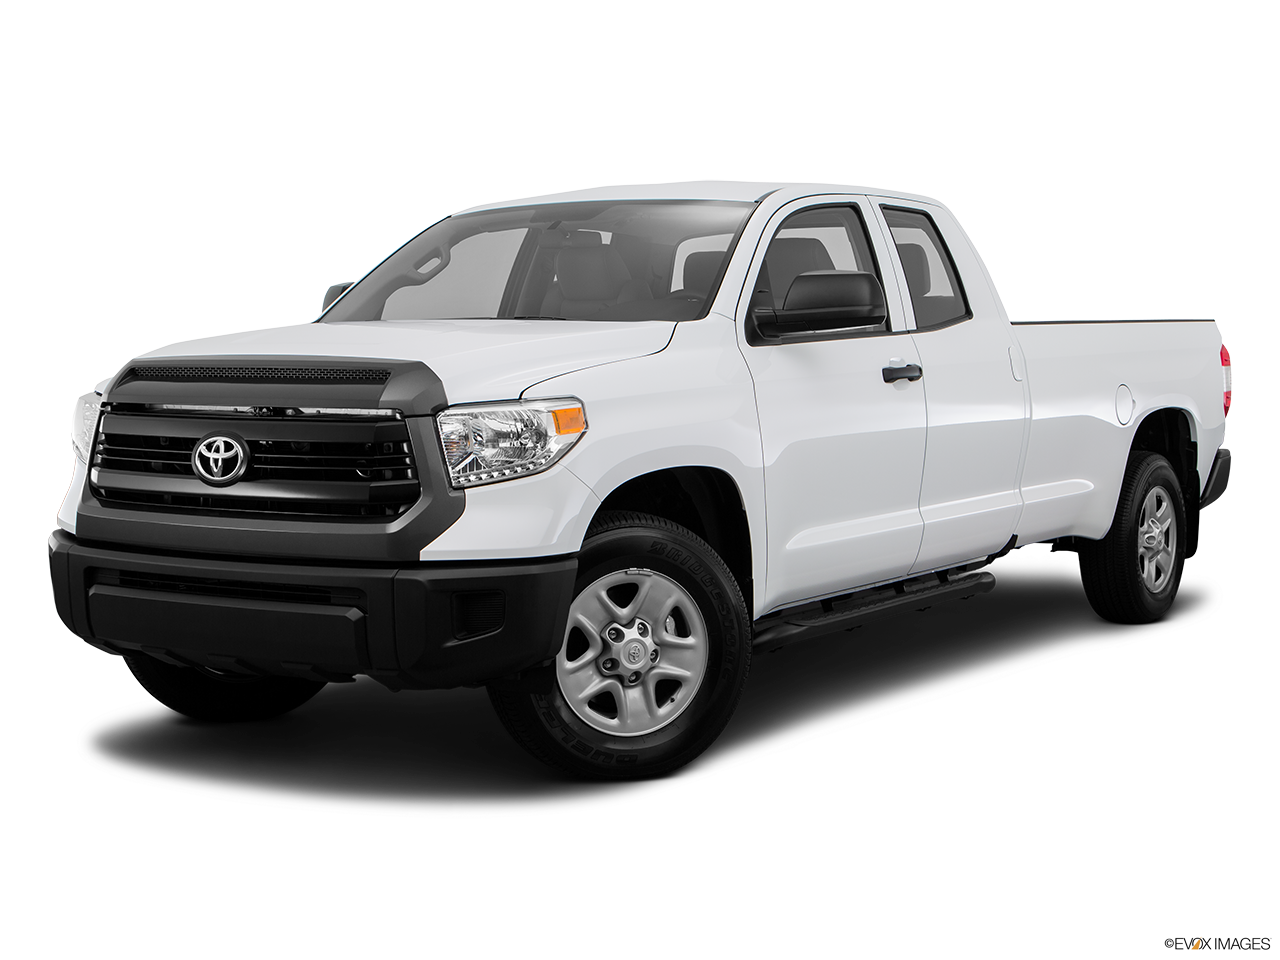 Test Drive A 2016 Toyota Tundra at Madera Toyota in Madera